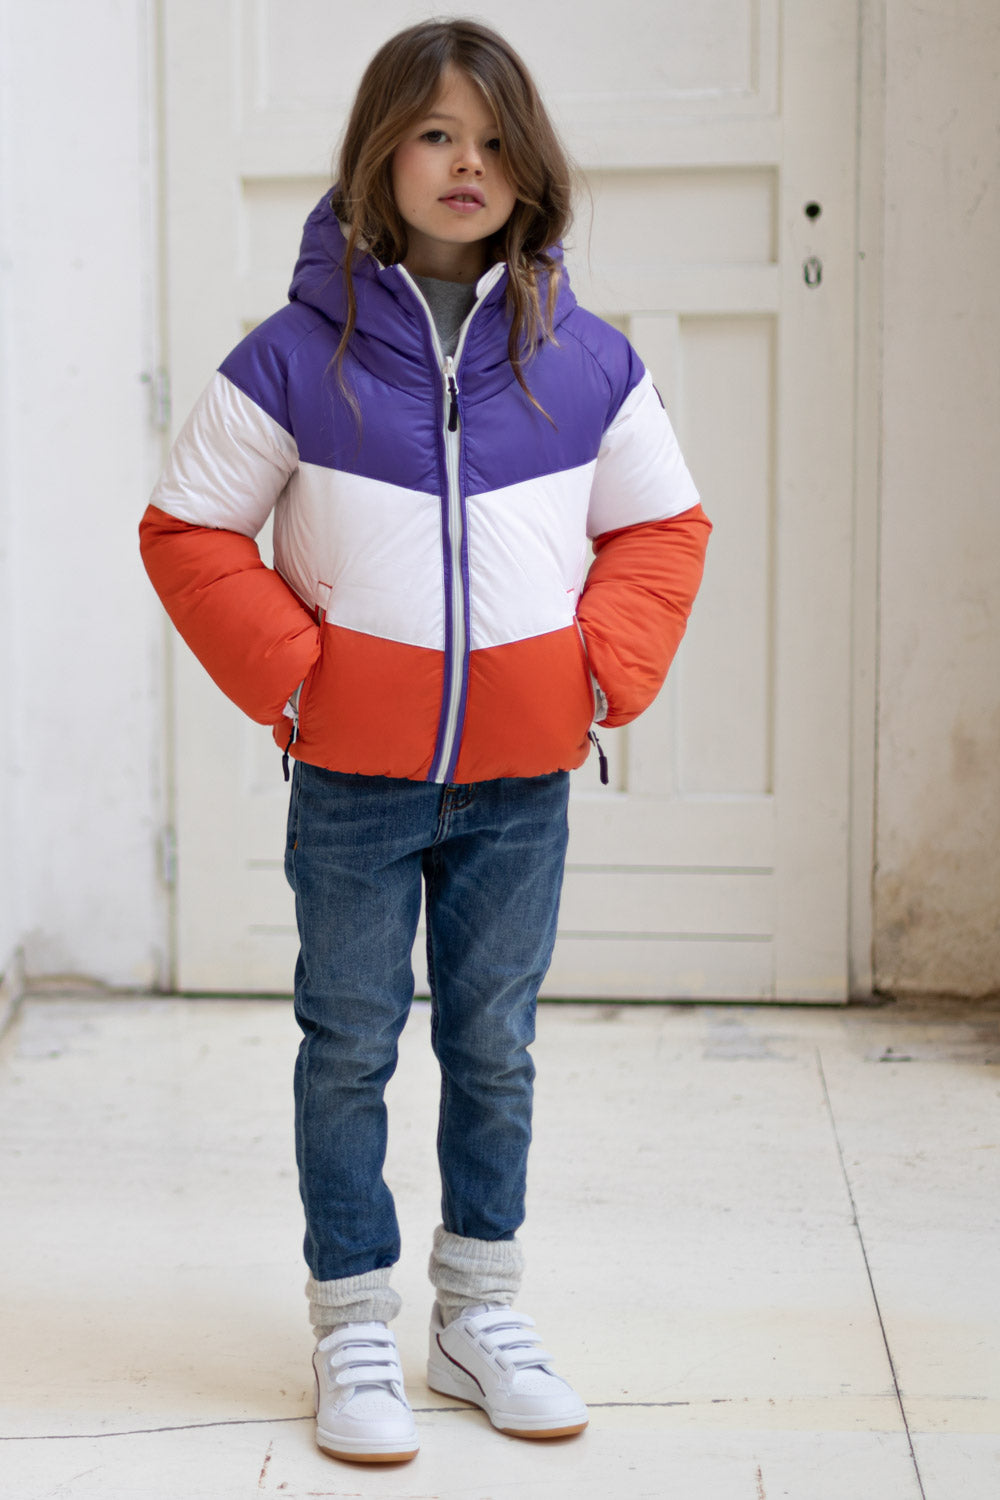 SNOWDANCE Off White - Reversible Down Jacket